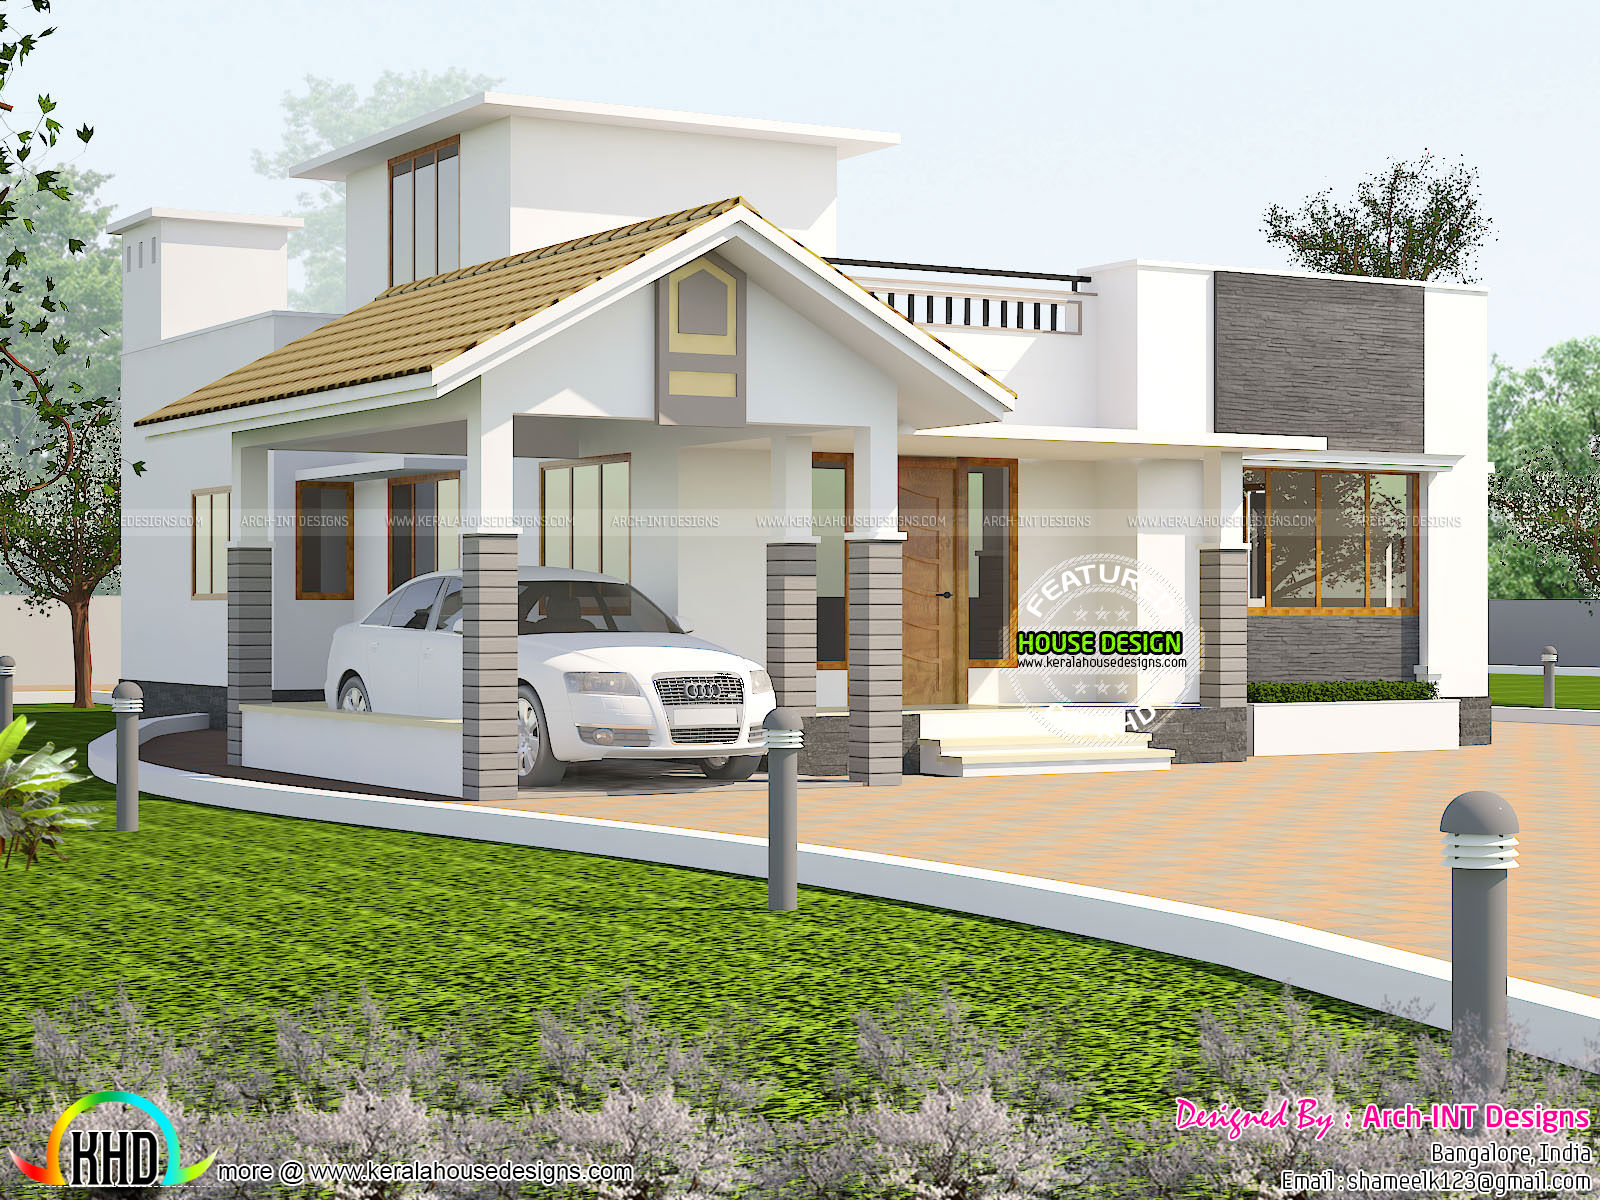 Ground floor house plan - Kerala home design and floor plans